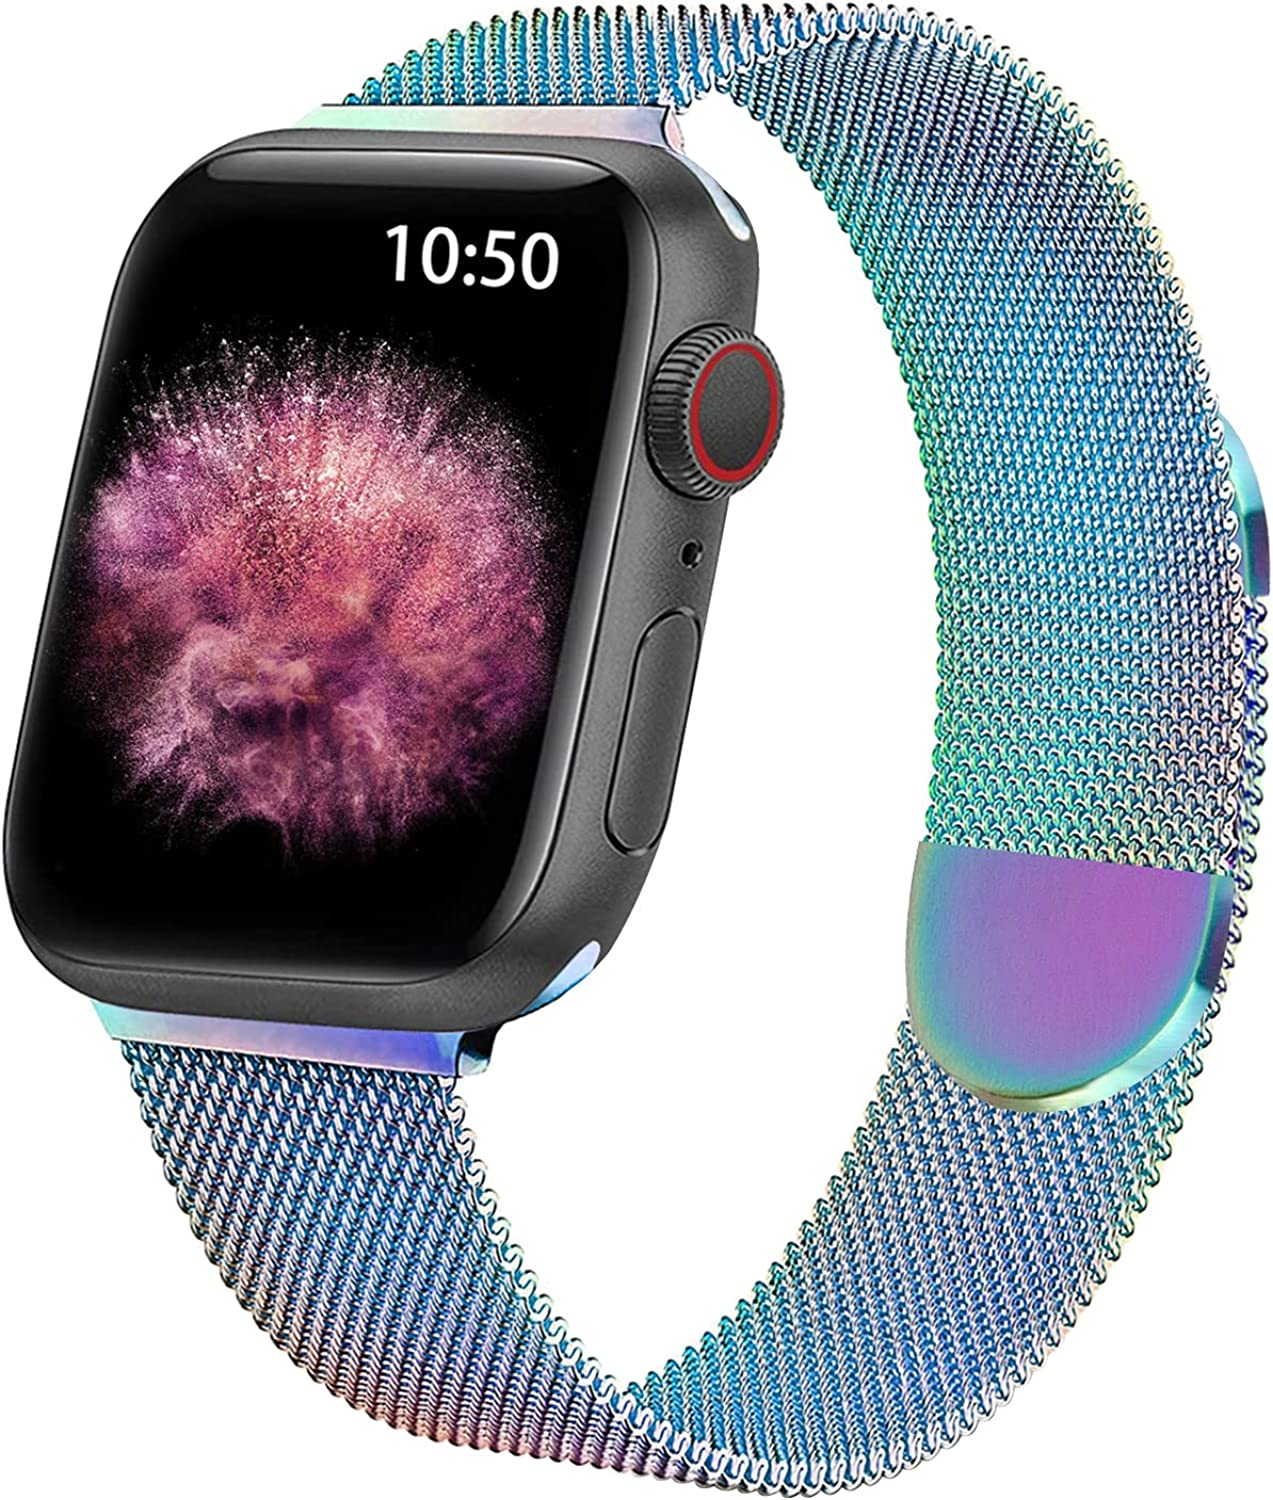 WETAL Metal Magnetic Milanese Band for Apple Watch Bands 44mm 42mm 40mm 38mm, Stainless Steel Mesh Strap for iWatch Series 6 5 4 3 2 1 SE